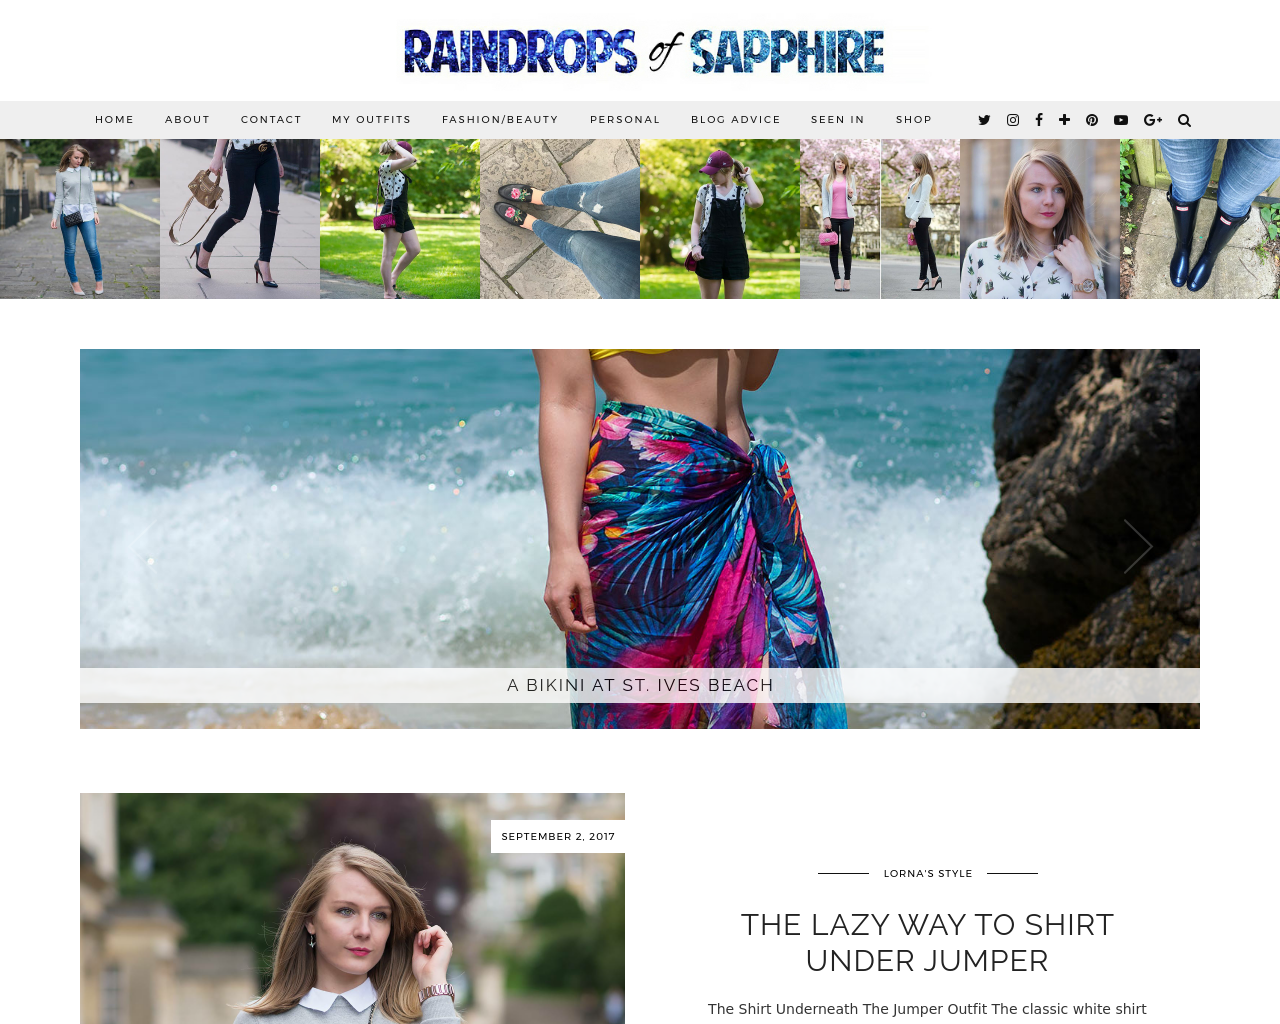 Raindrops-Of-Sapphire-Advertising-Reviews-Pricing